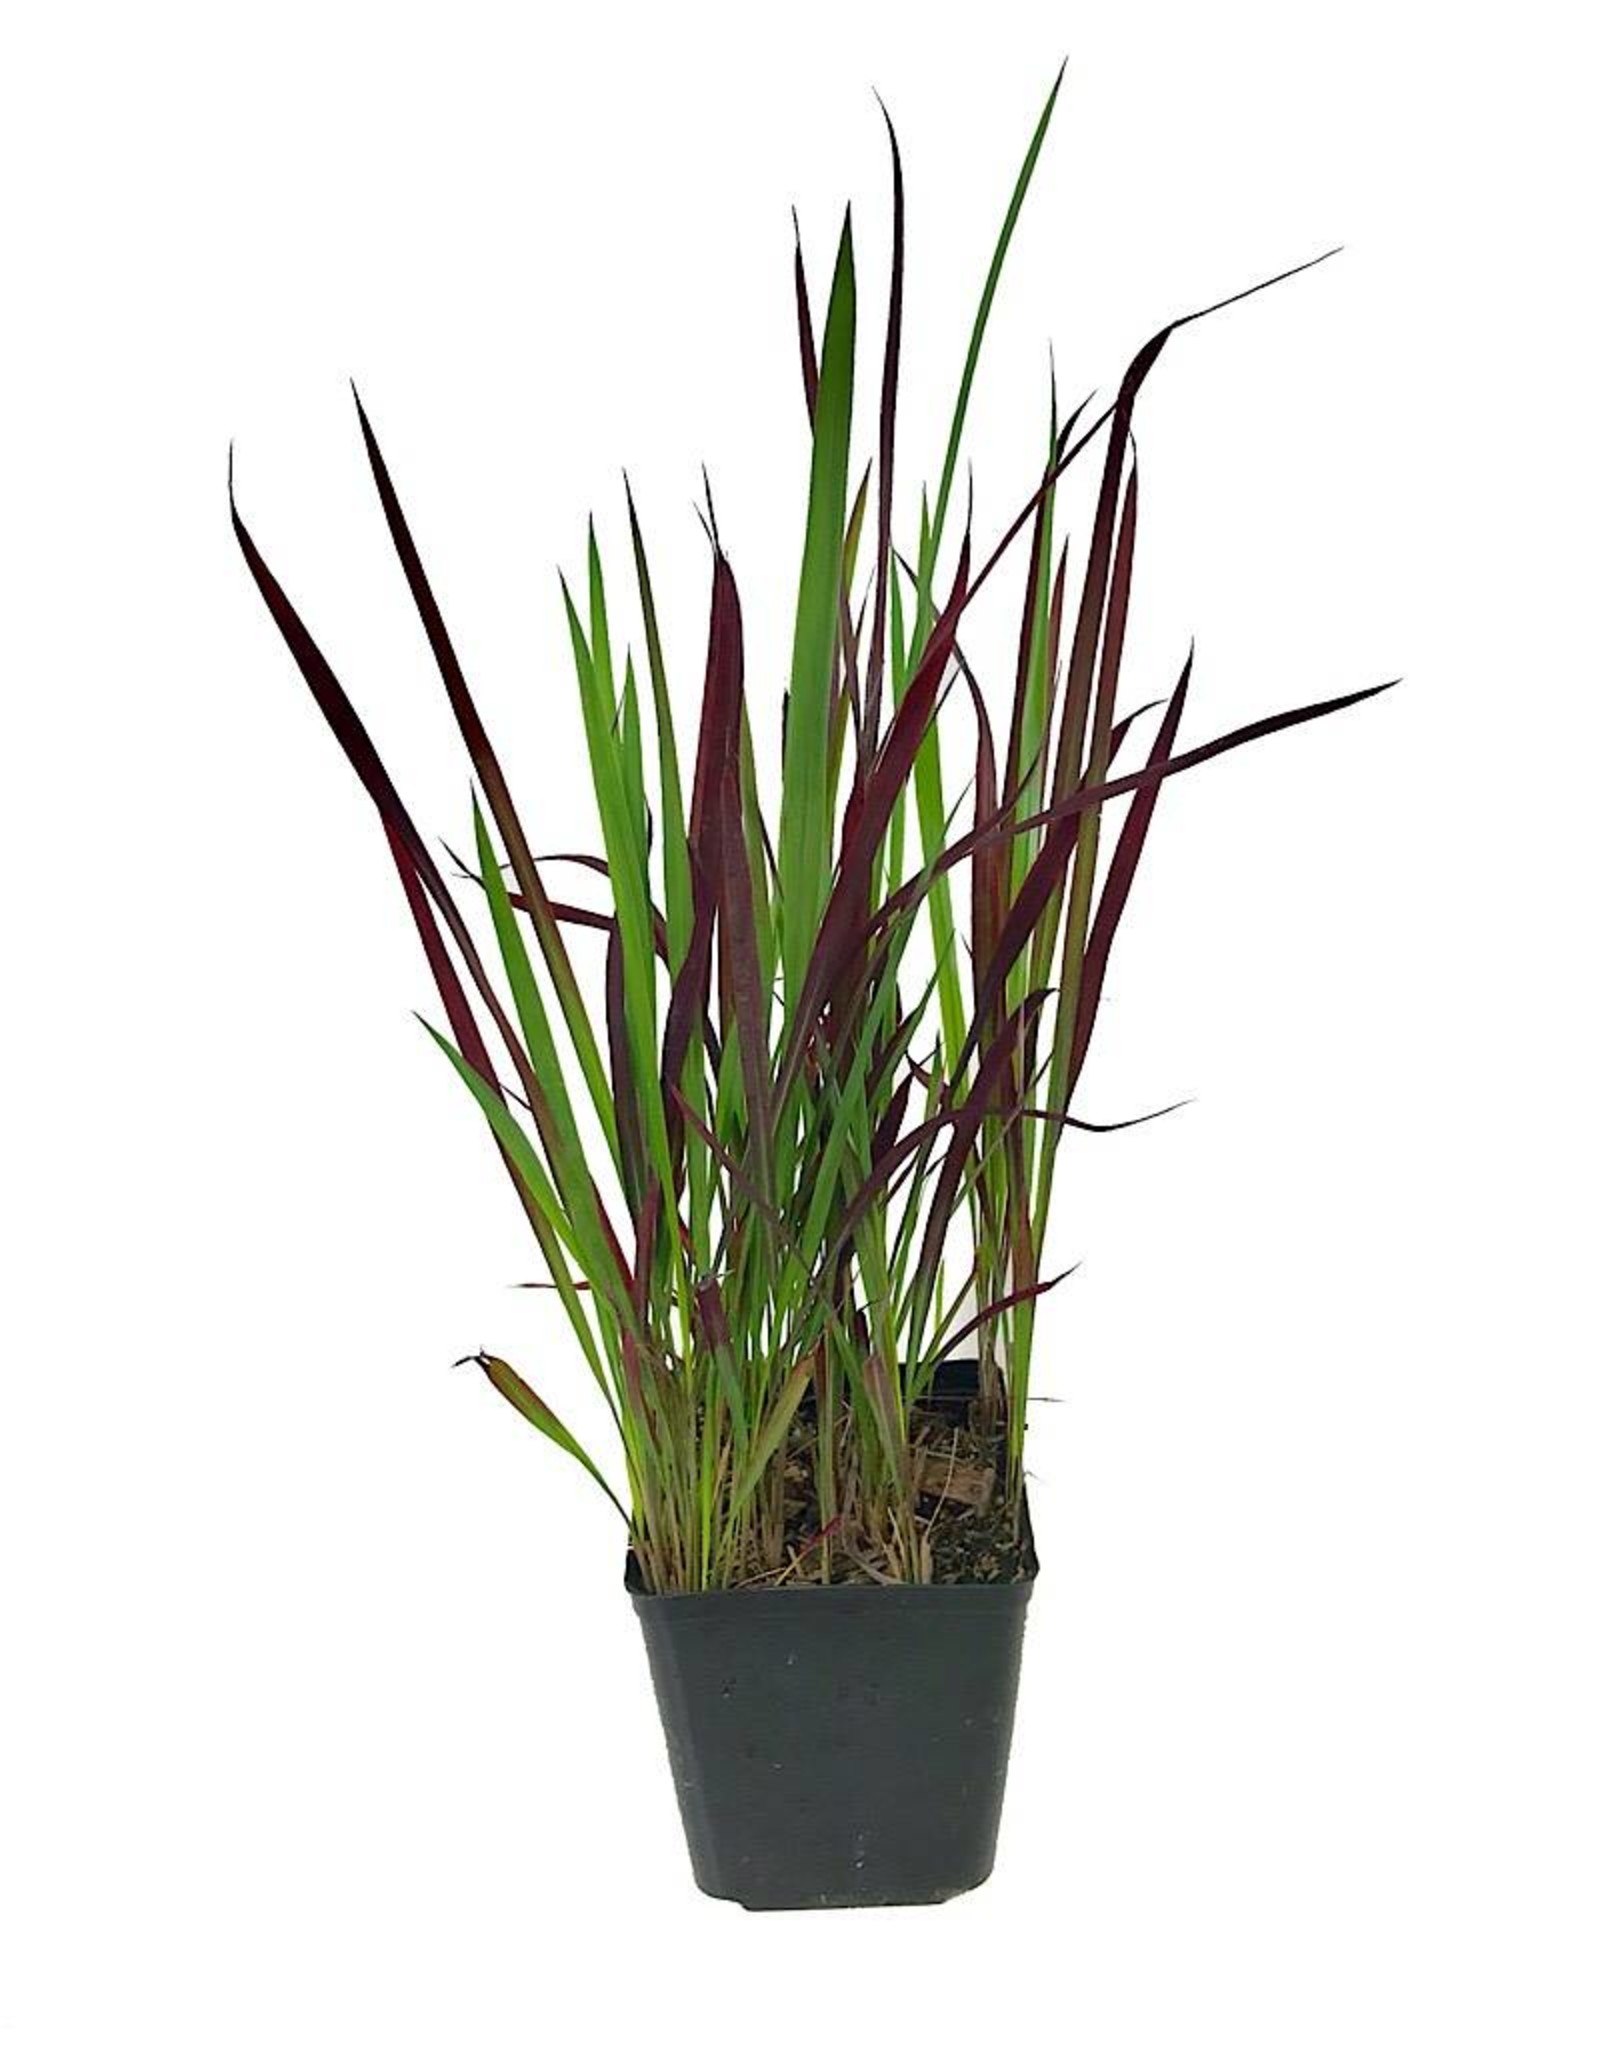 Imperata cylindrica 'Red Baron' 1 Gallon